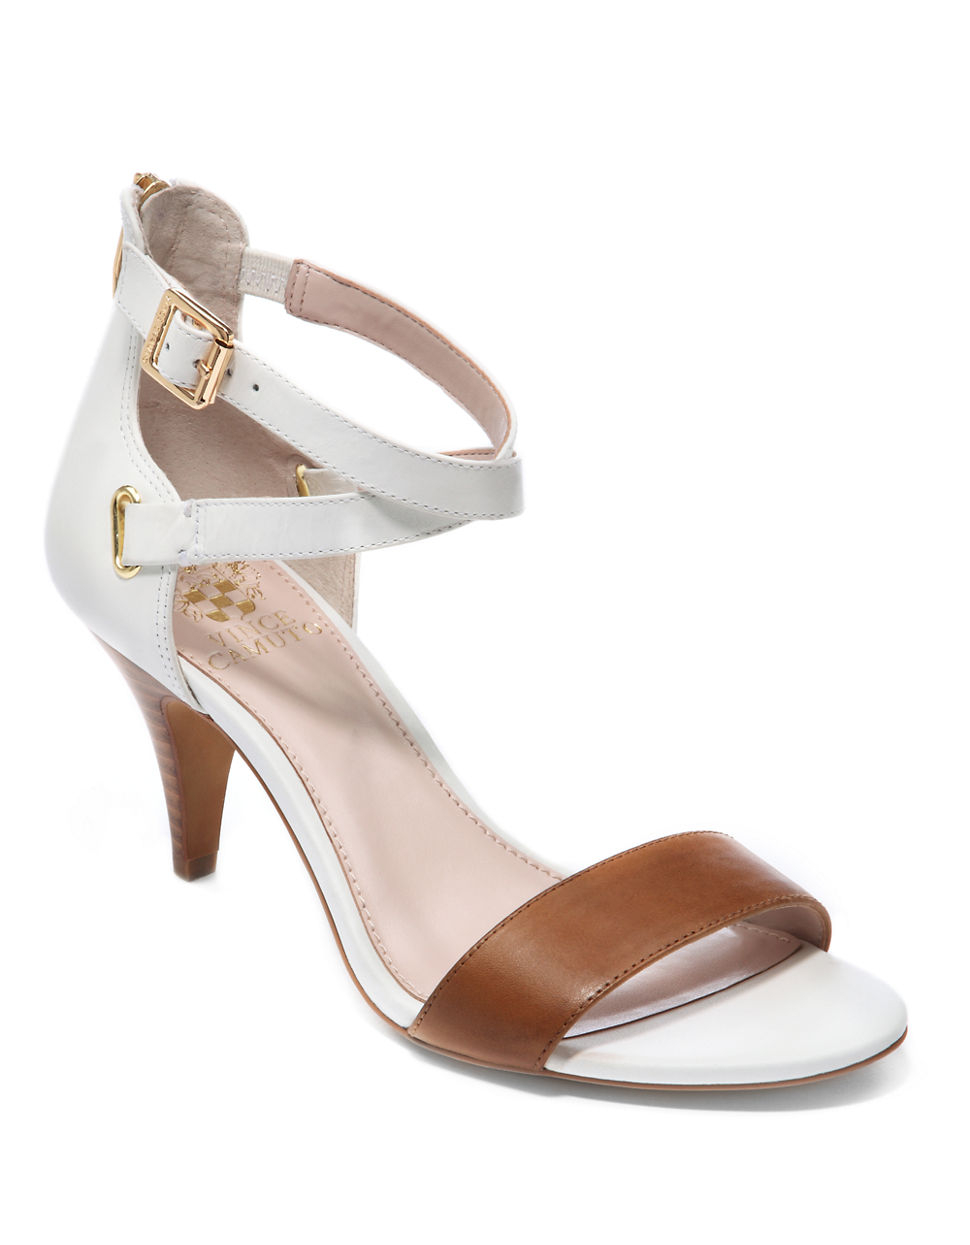 Vince Camuto Marlina Leather Strappy Open Toe Sandals In